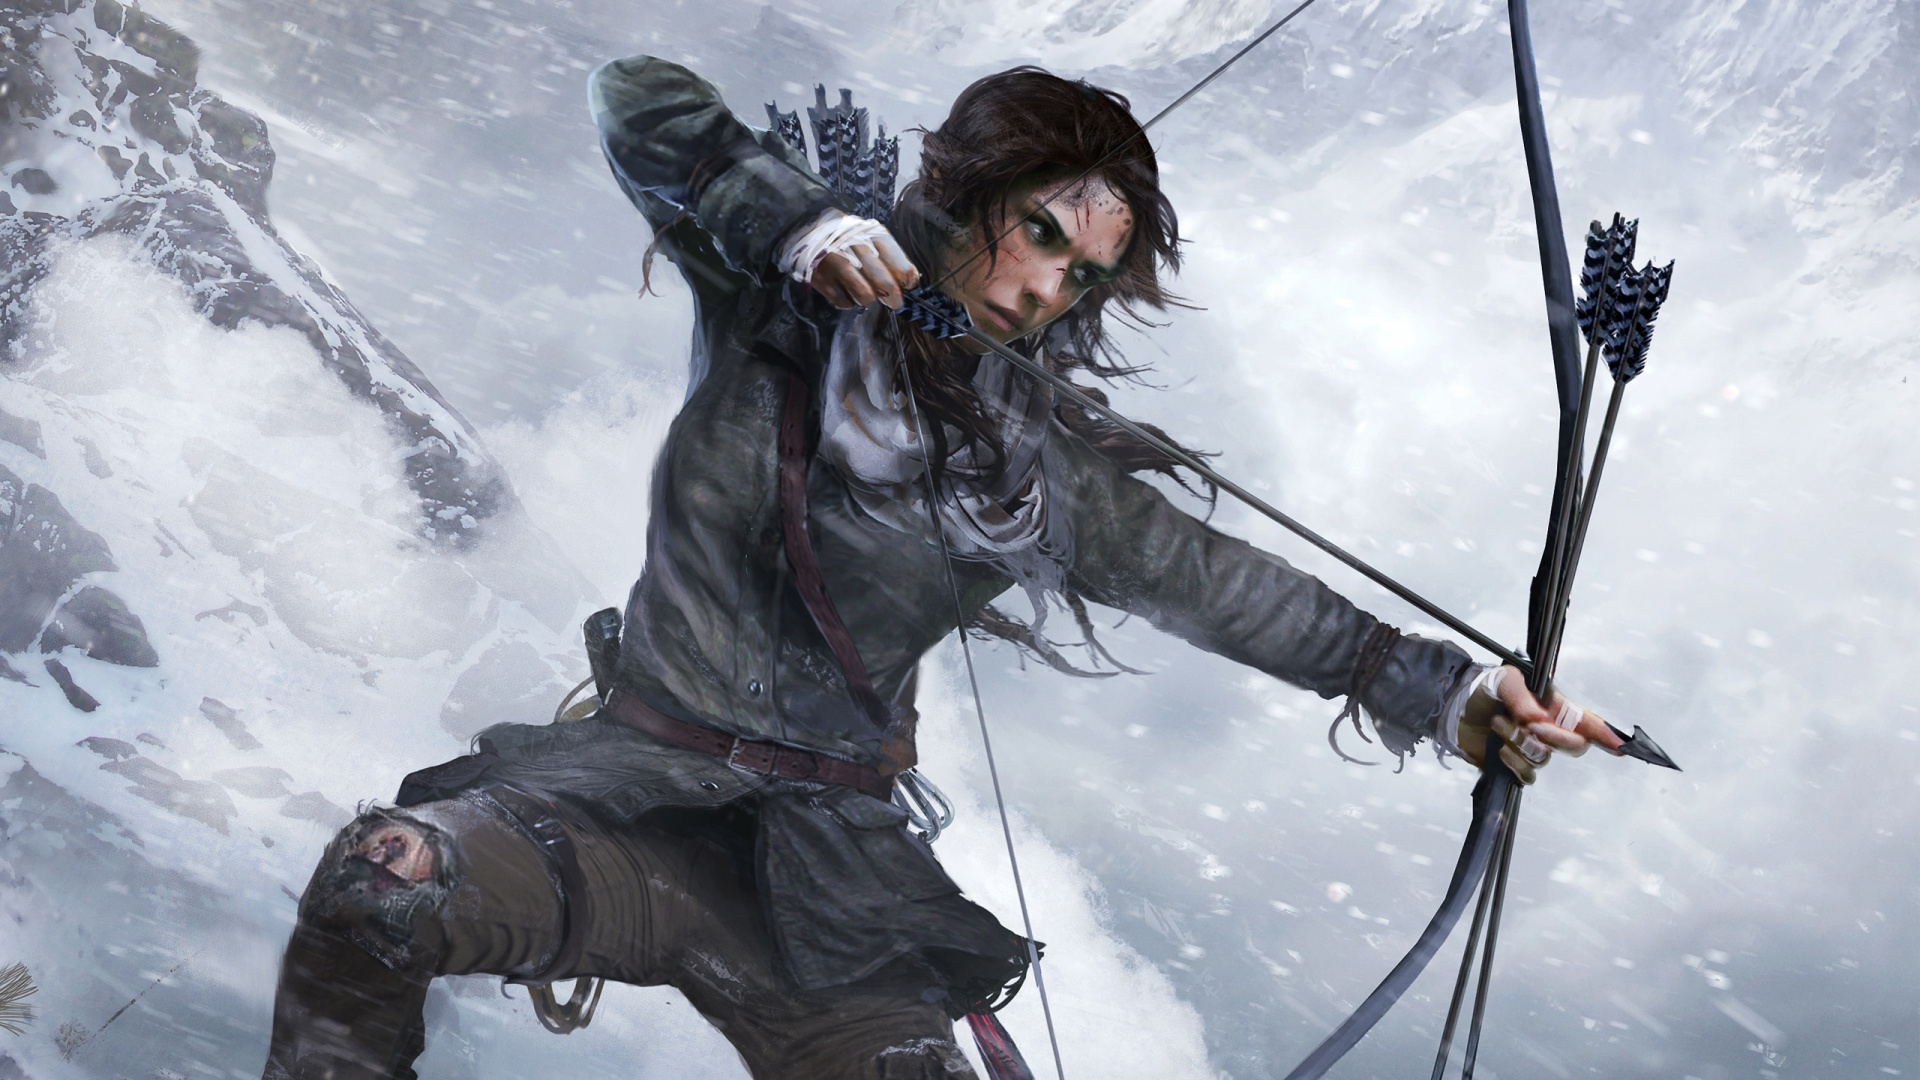 Lara Croft Rise Of The Tomb Raider Official Artwork Wallpapers In